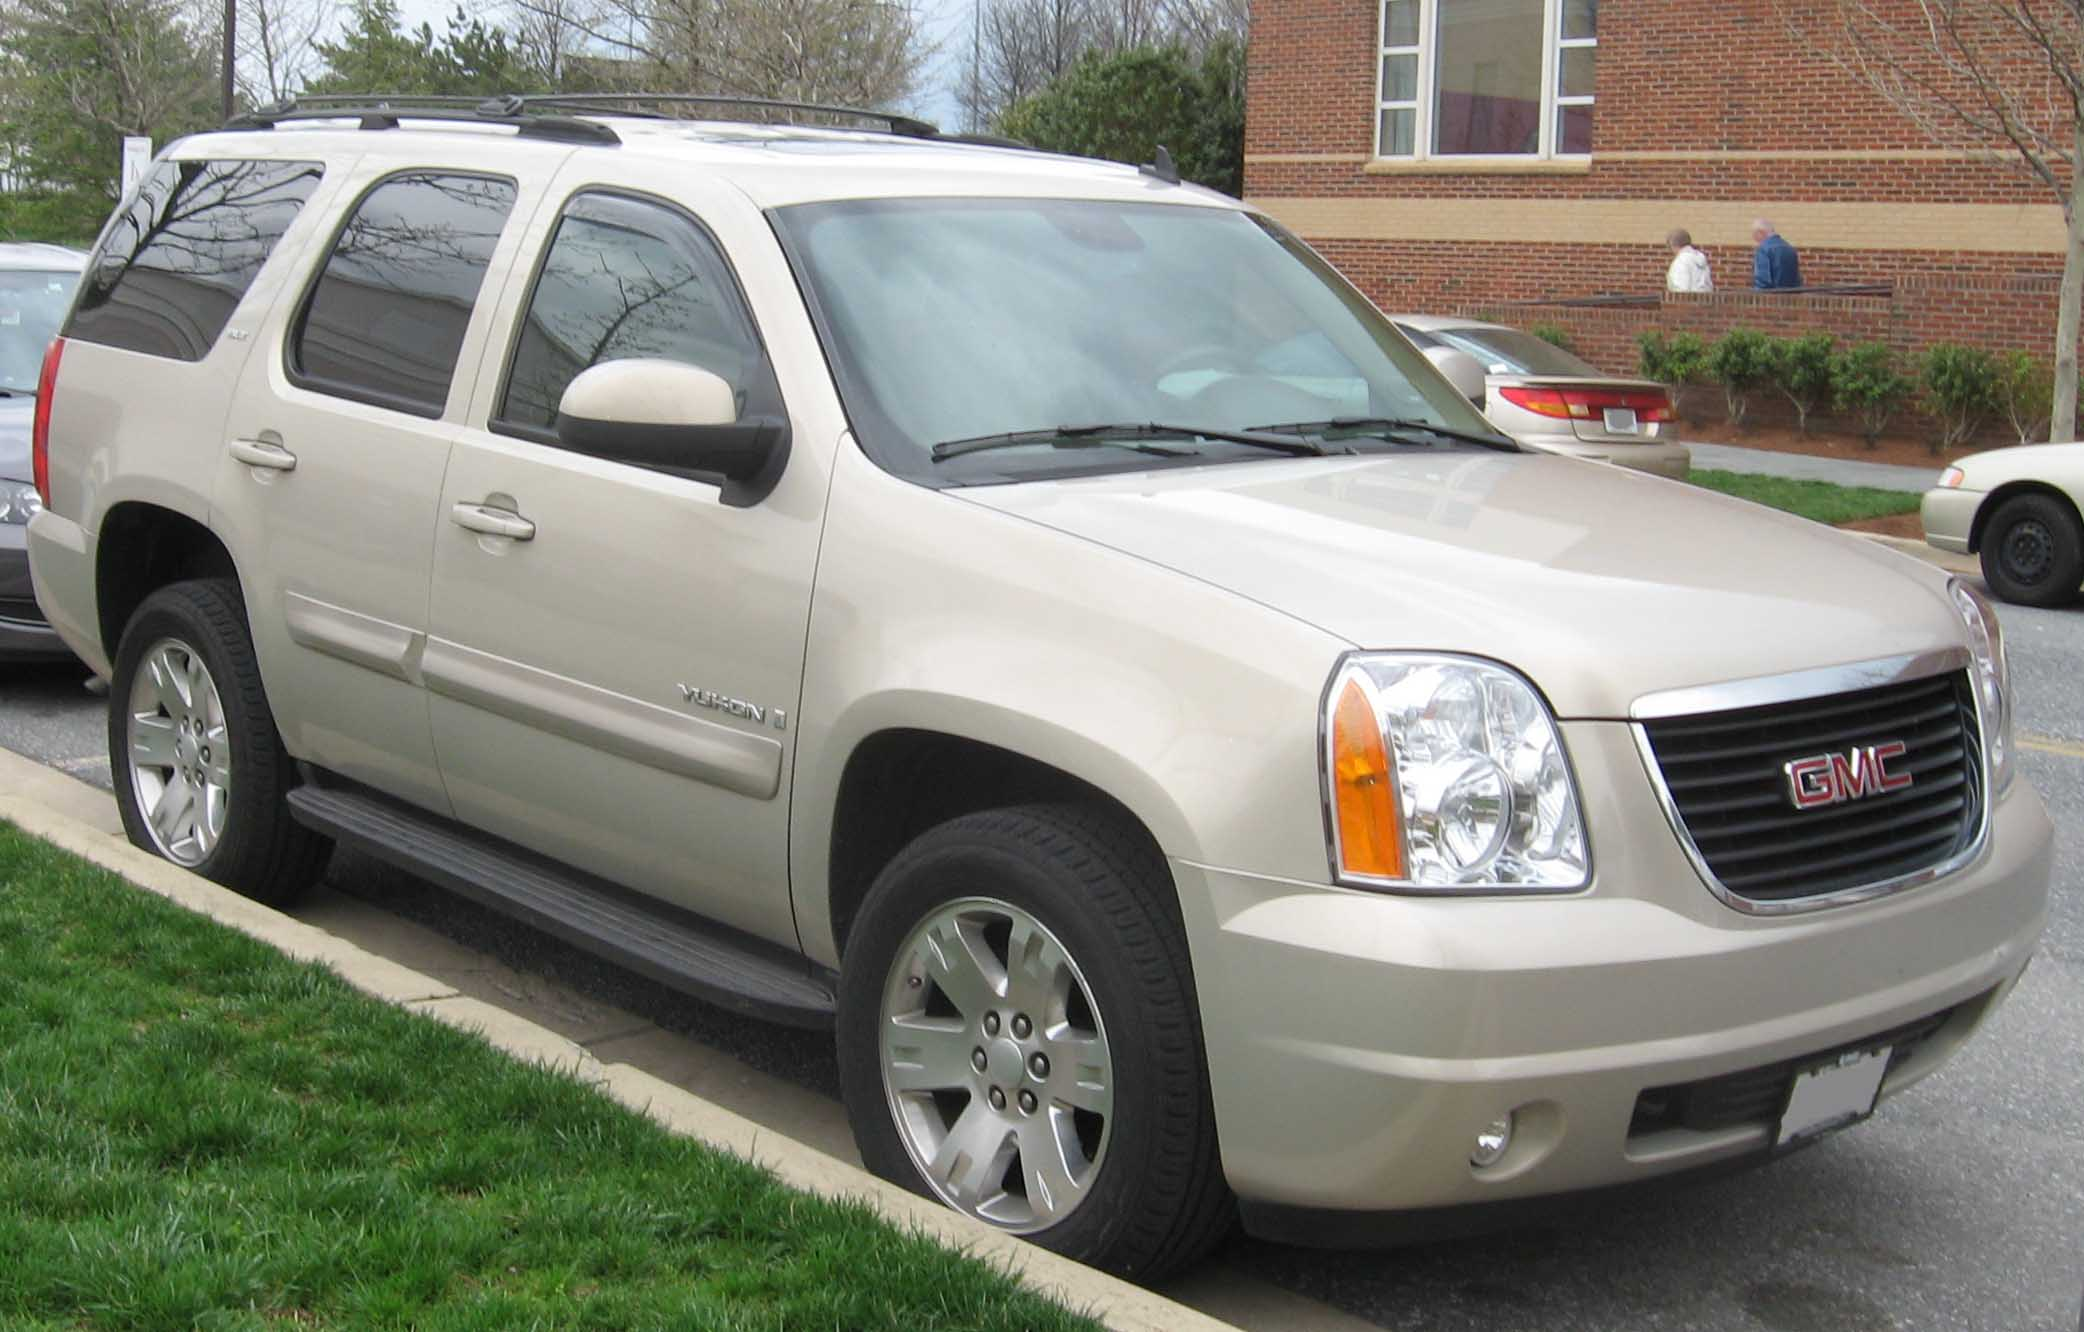 Pictures of gmc yukon (gmt900) 2009 #2